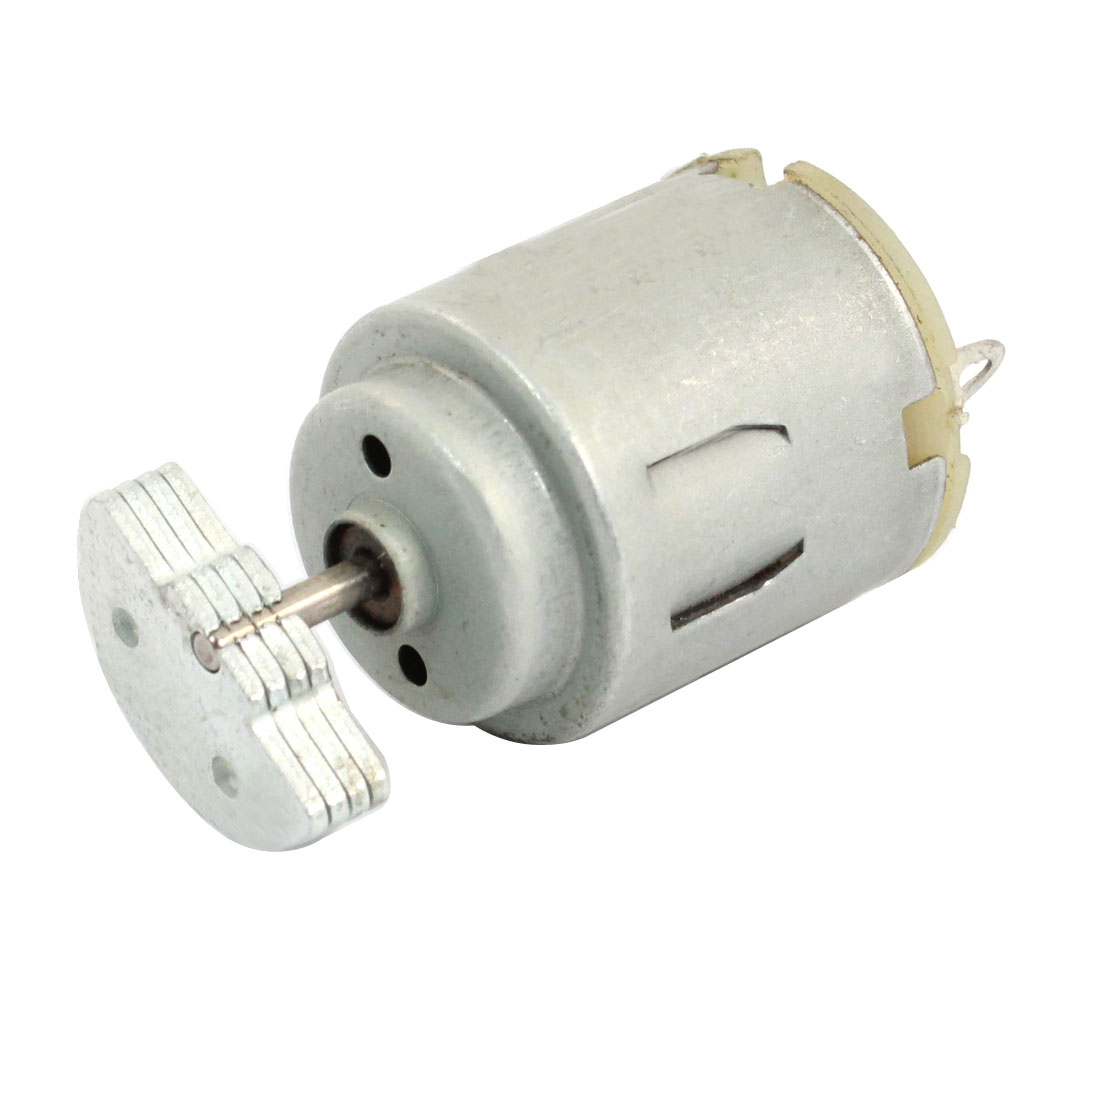 DC 3V-4.5V 0.62A 12500RPM Output Speed Micro Vibrating Motor 25mmx20mm